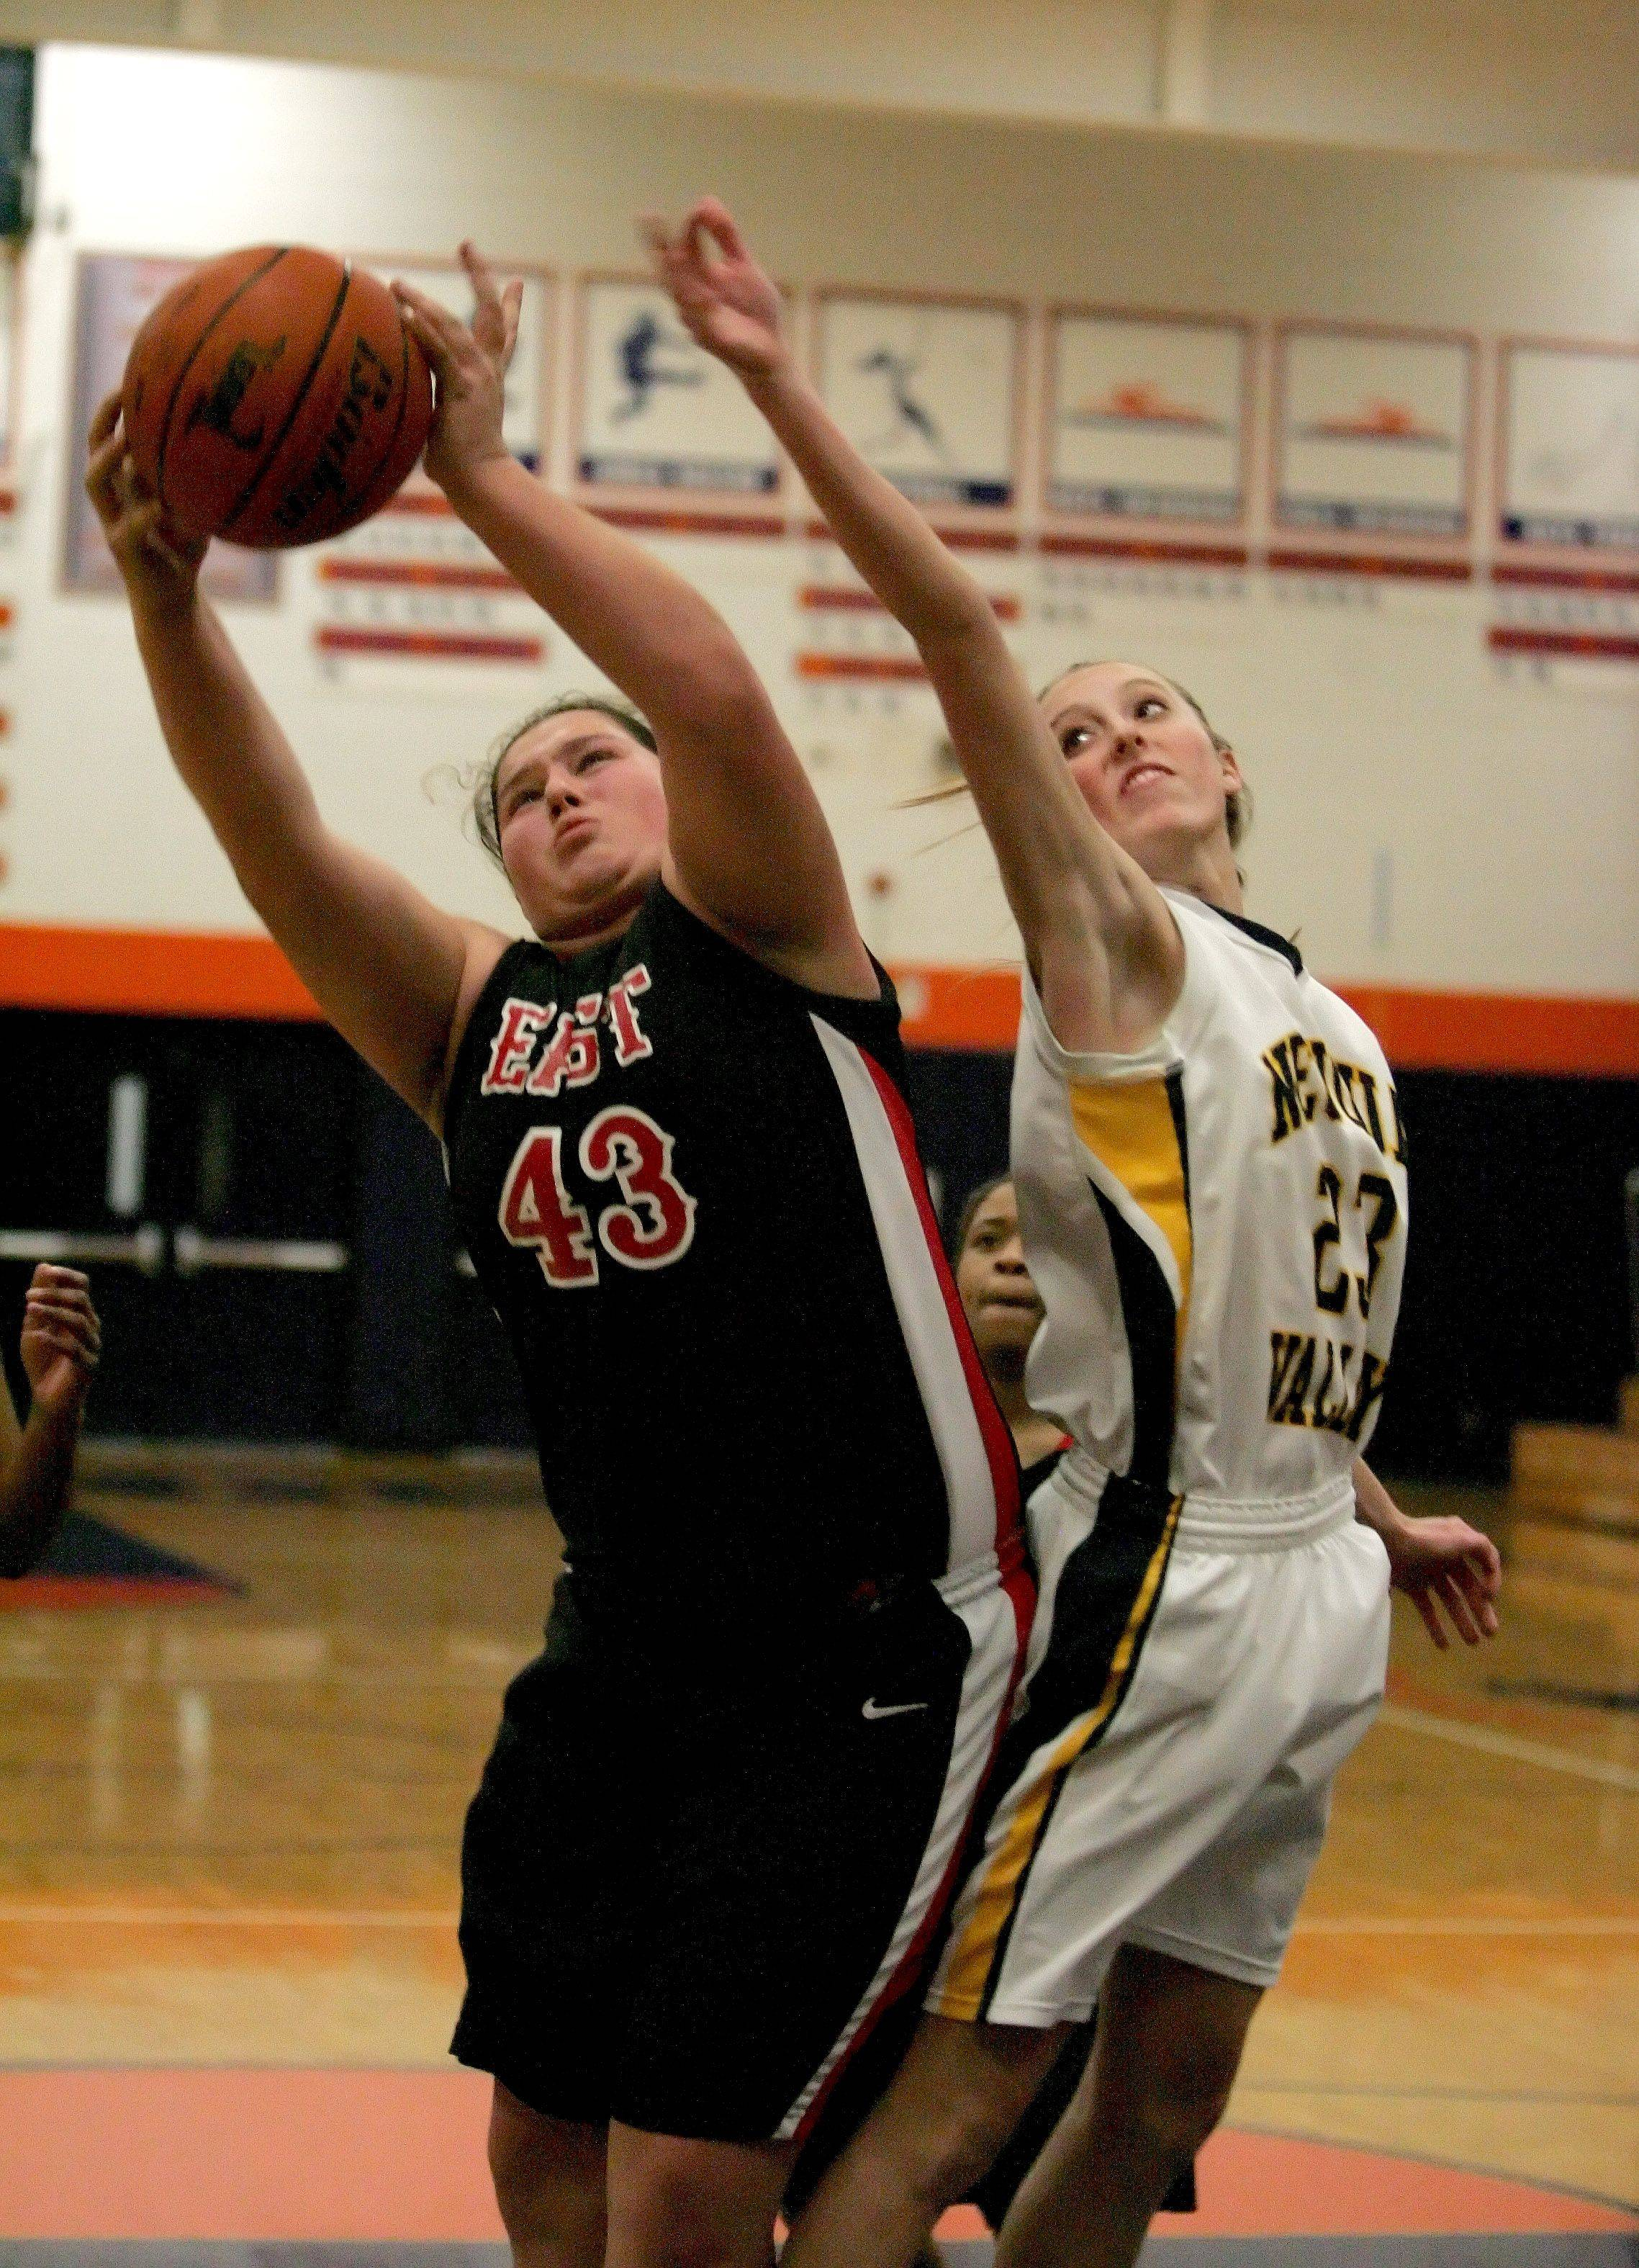 Michaela Stranski of Glenbard East, left, grabs a rebound over Allison Hedrick of Neuqua Valley.